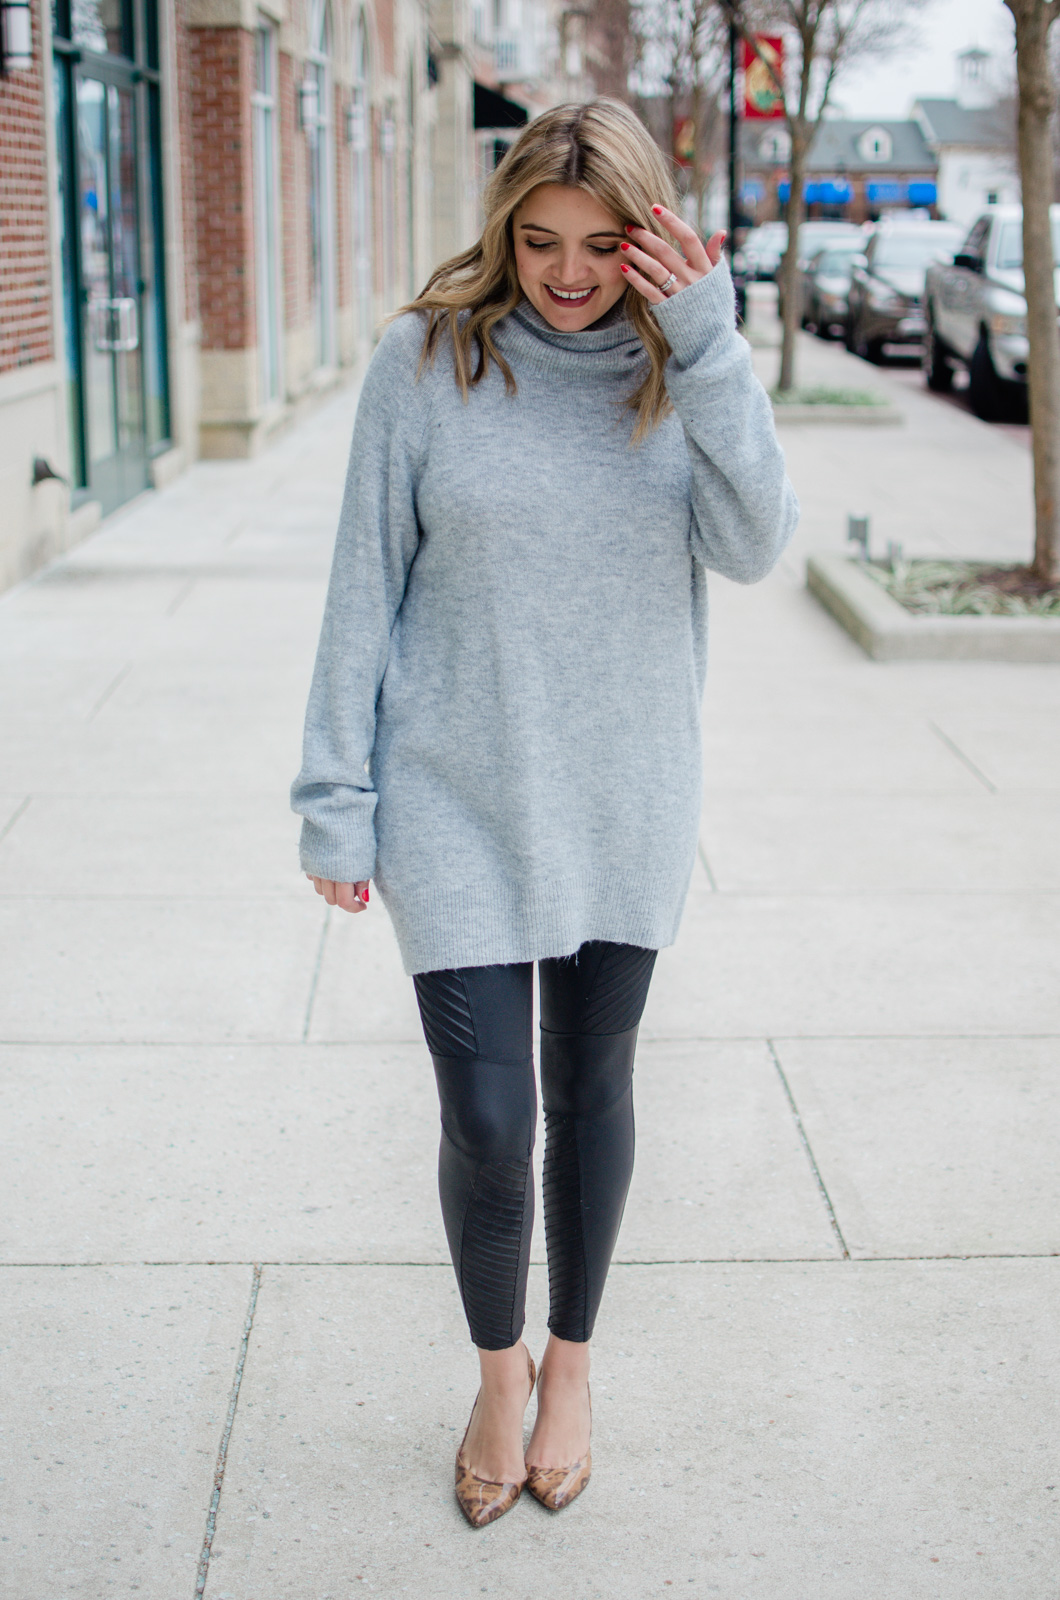 Affordable style blogger Lauren Dix shares four spanx faux leather moto leggings outfits for winter. From weekend casual to date night, these leggings outfits are perfect for so many occasions.